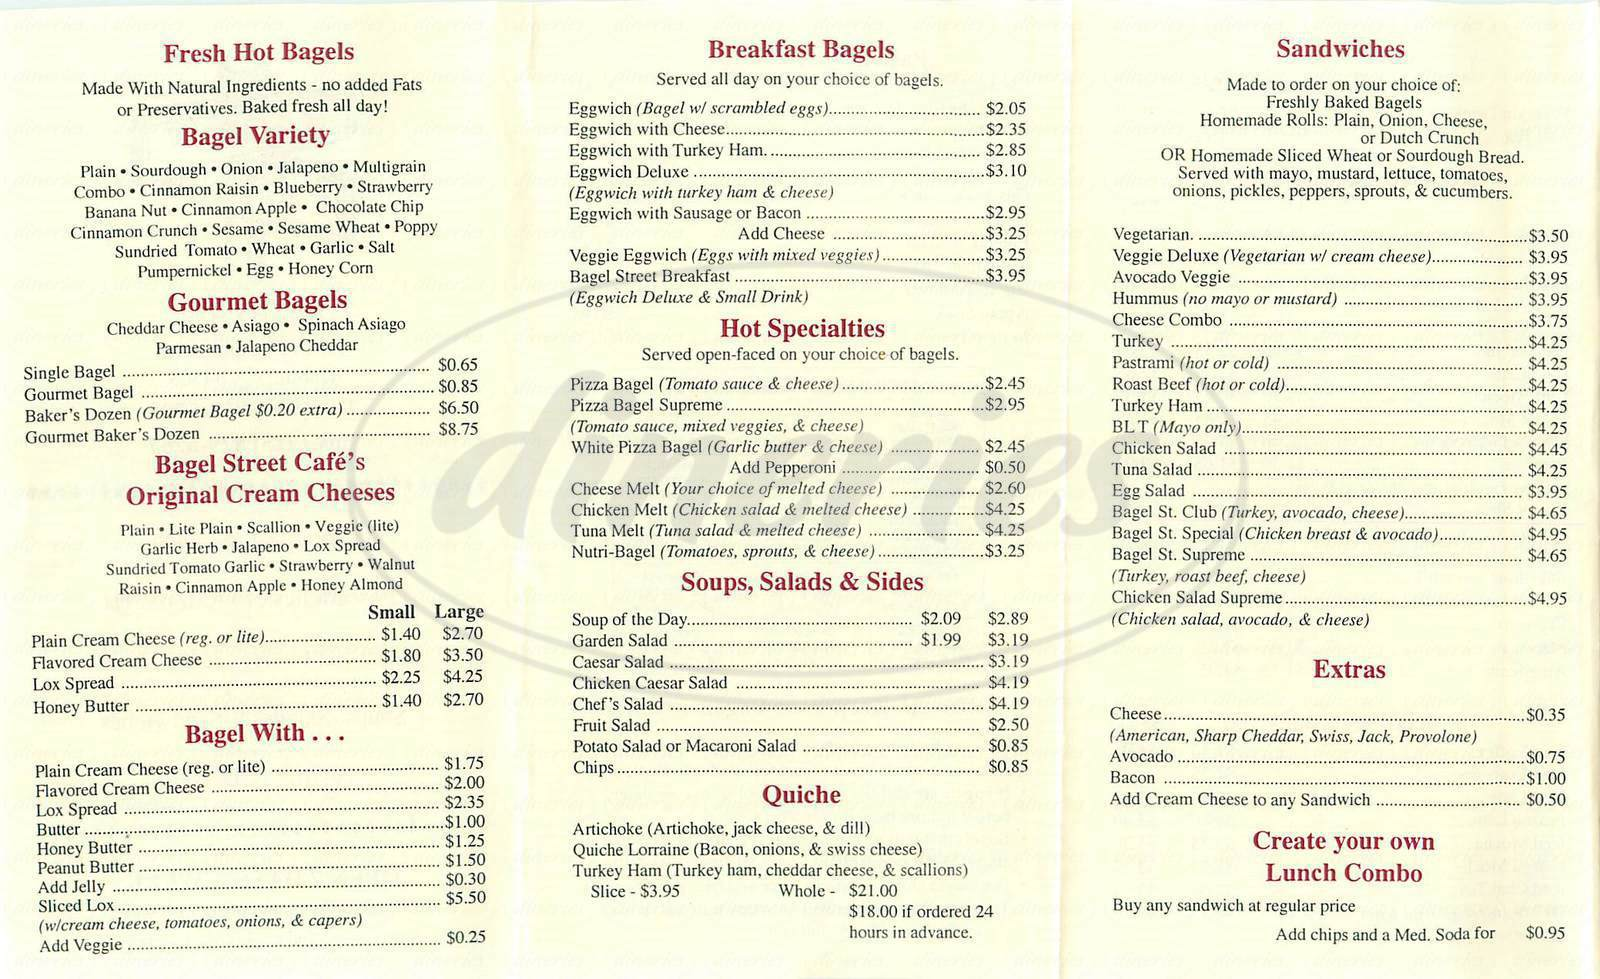 menu for Bagel Street Cafe